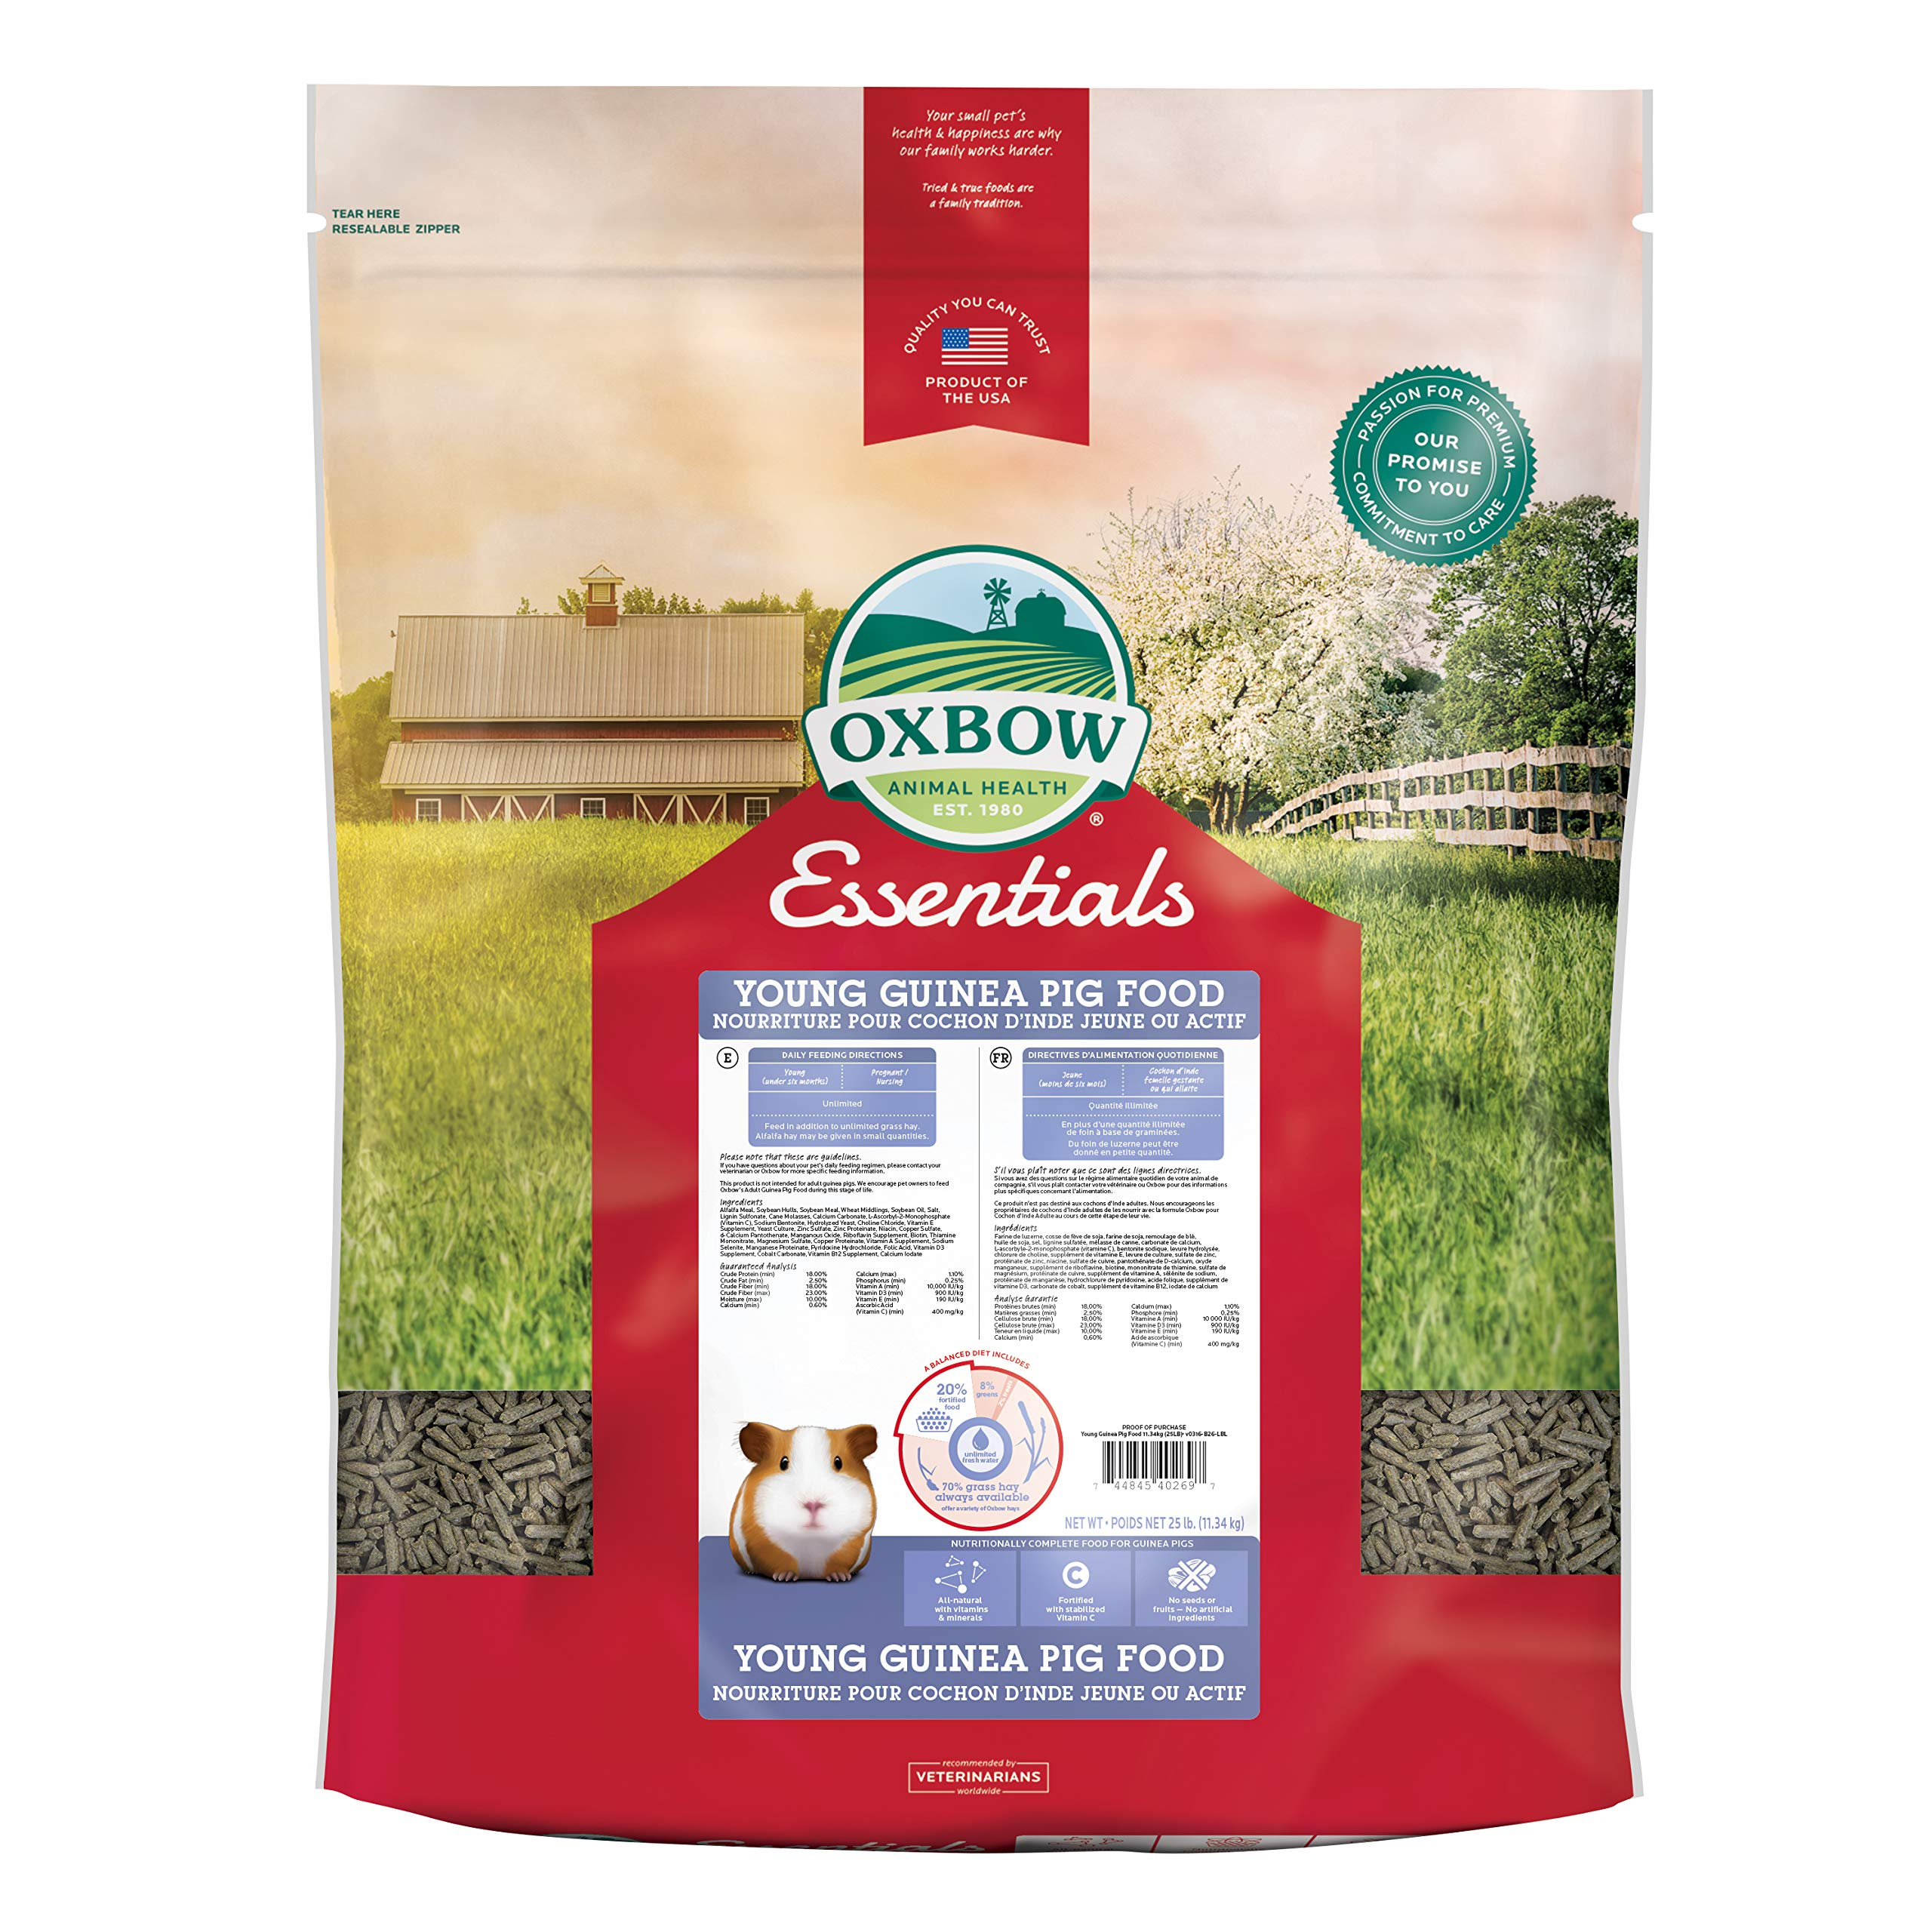 Oxbow Animal Health Cavy Performance Essentials Young Guinea Pig Food, 25-Pound by Oxbow Animal Health